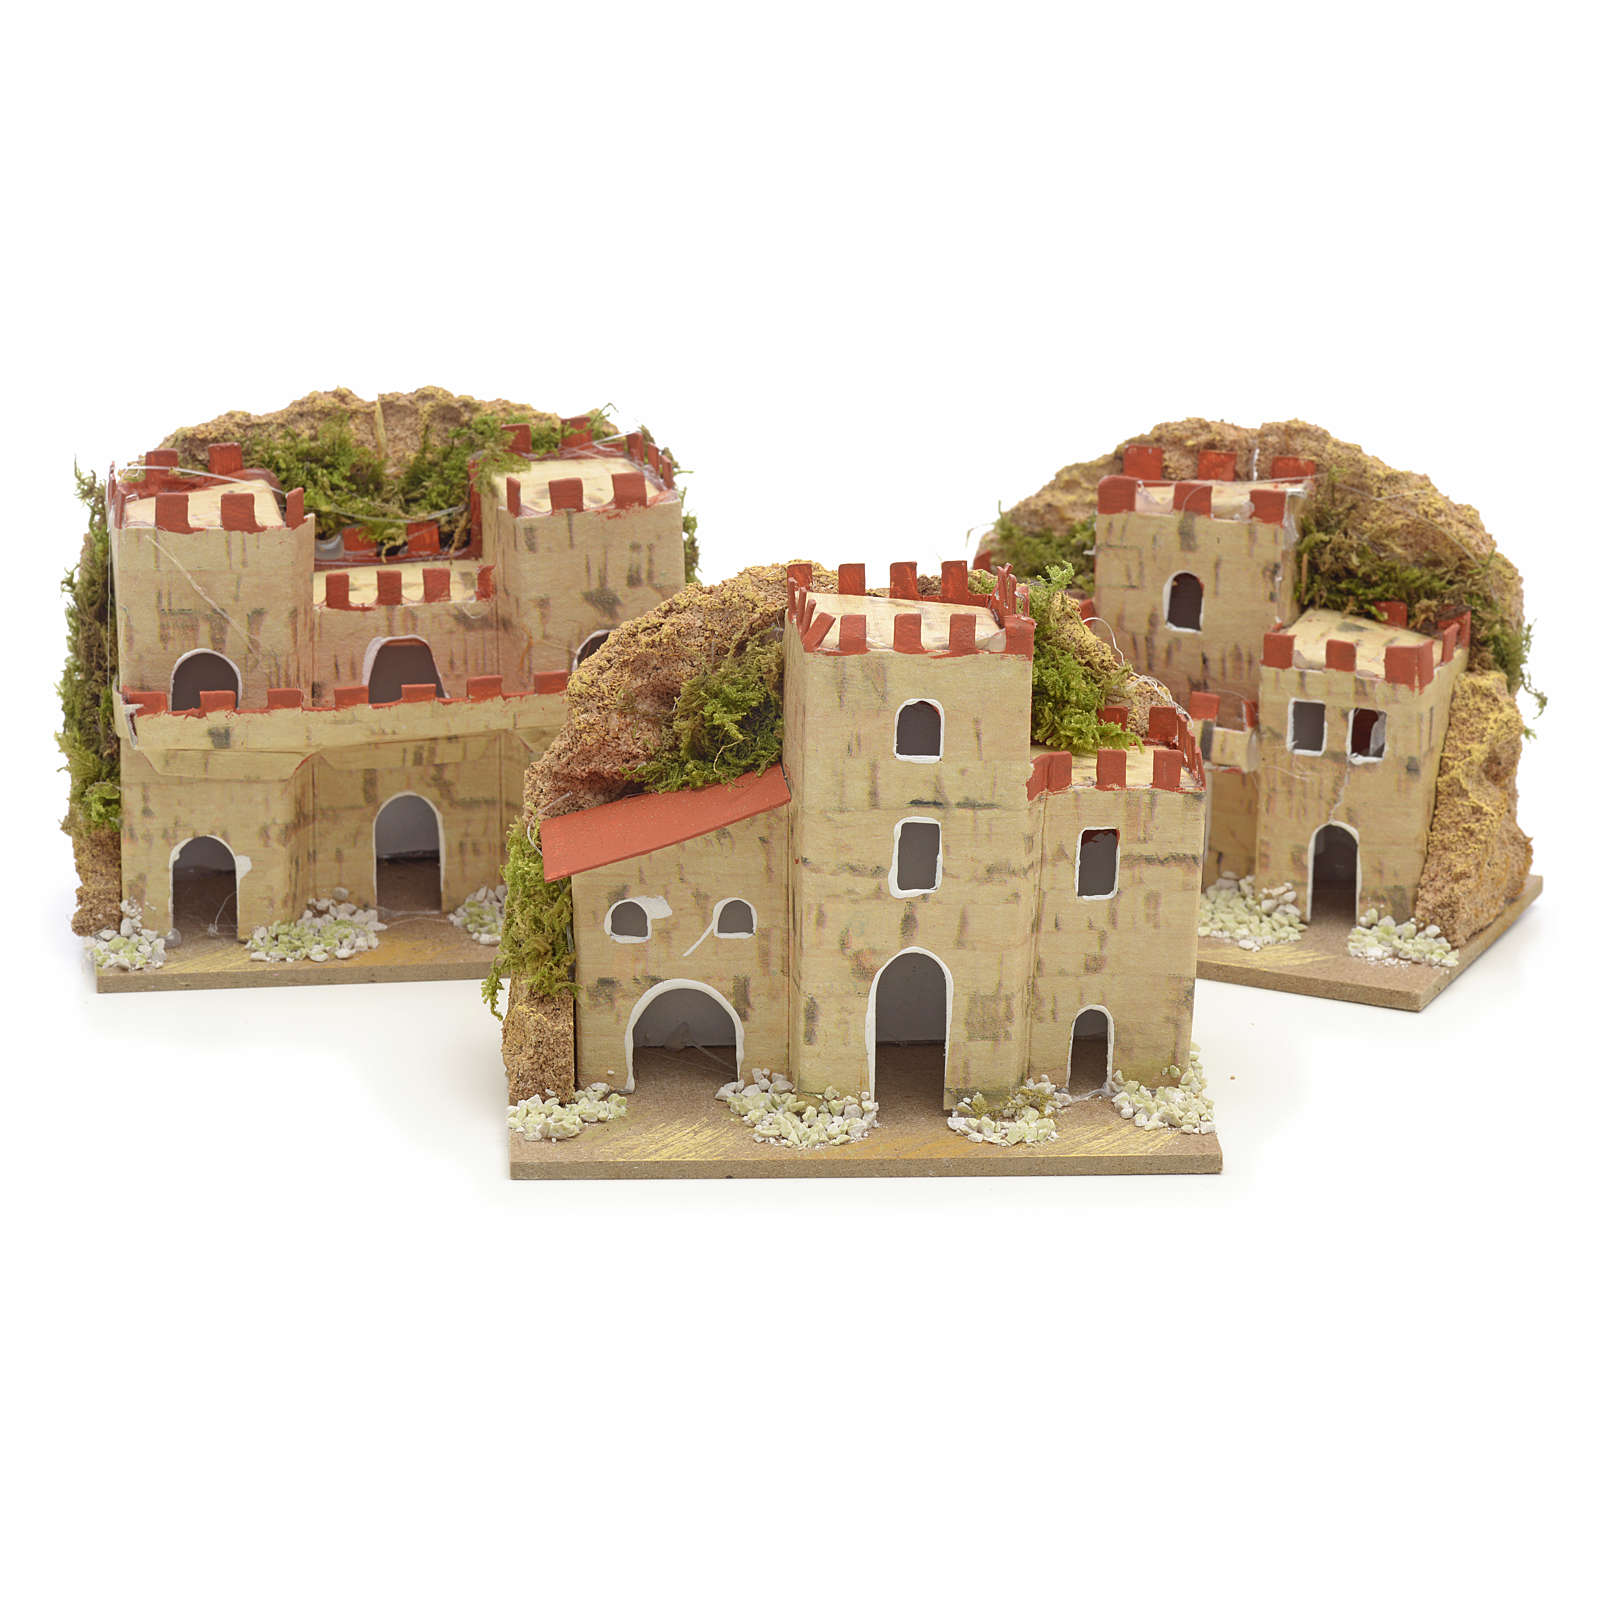 Nativity setting, houses in cardboard 8x10x6cm (3 different models) 4